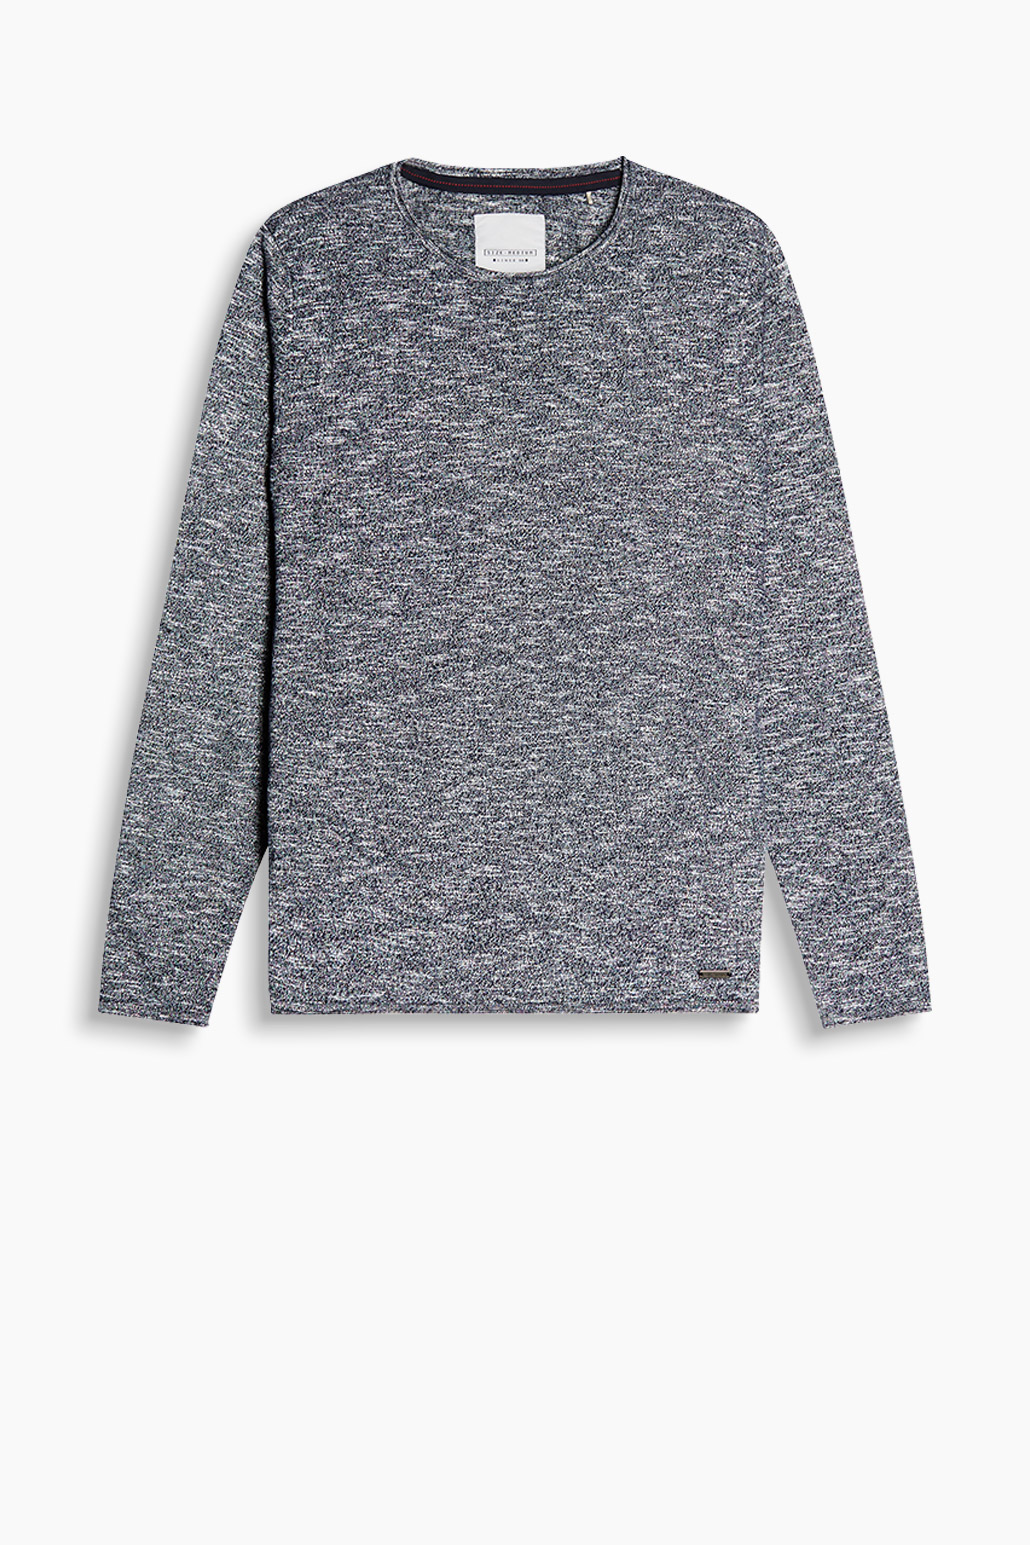 Esprit Navy Slub Sweater